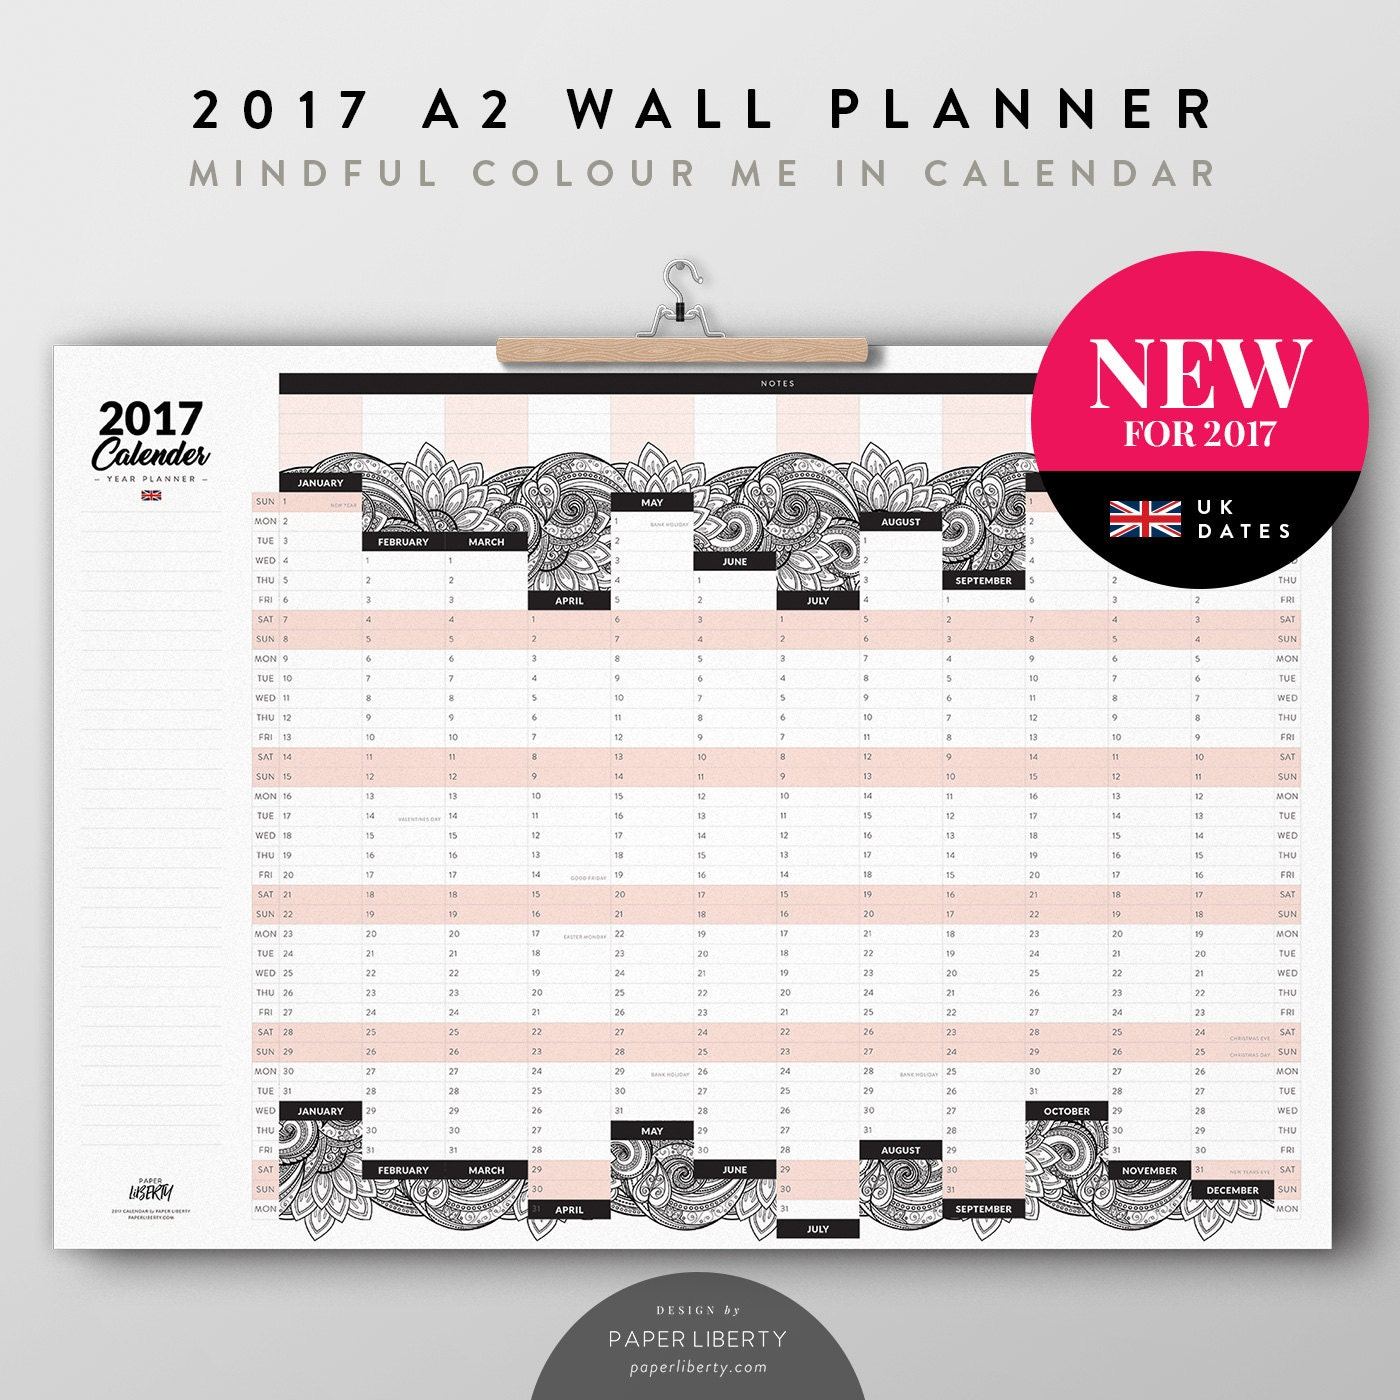 2017 A2 Large Wall Planner Mindful Colour Me In Calendar